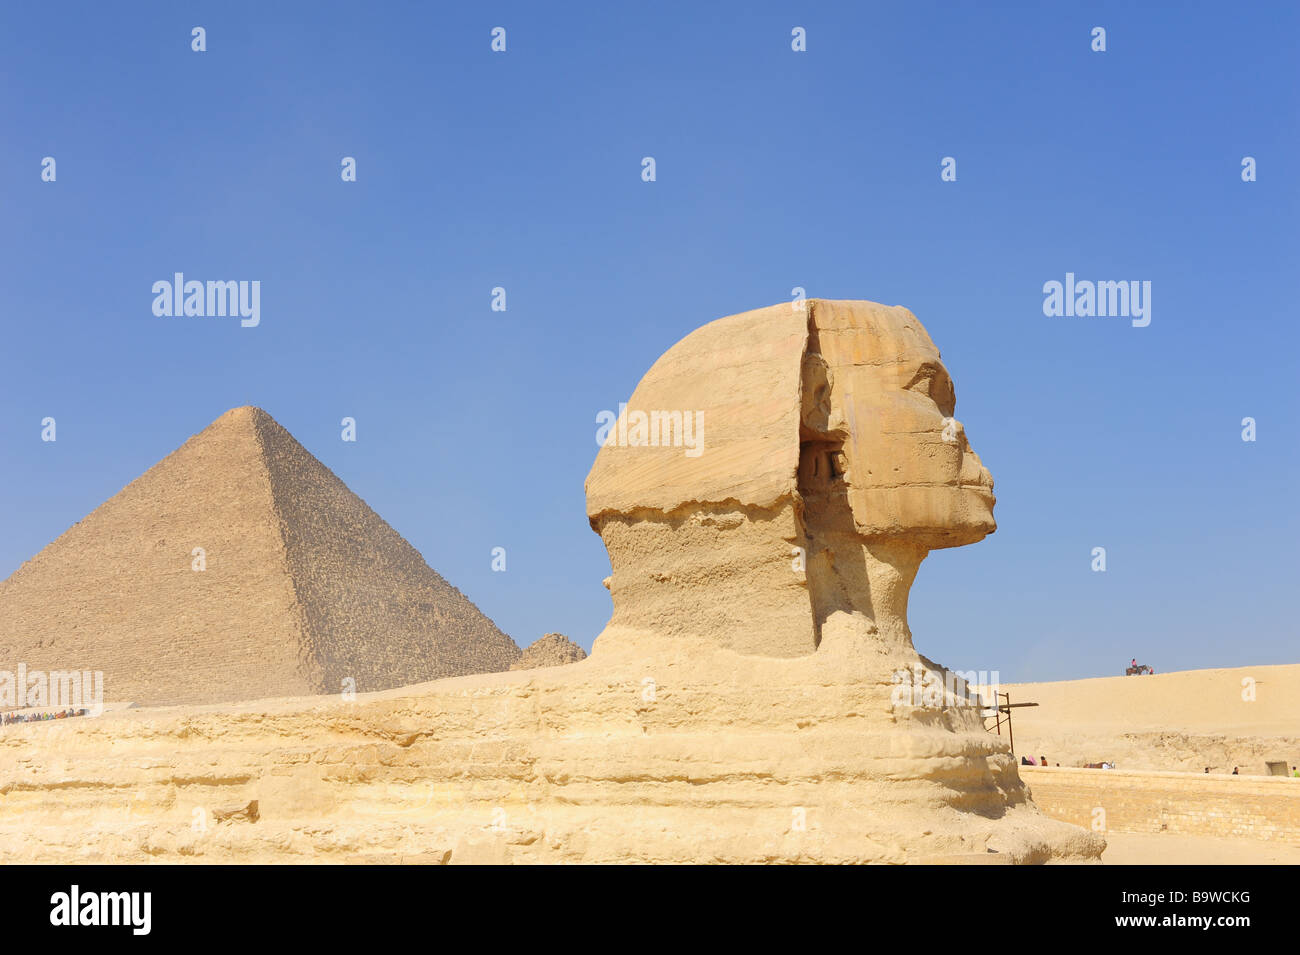 egypt-giza-the-great-pyramids-and-the-sphinx-B9WCKG.jpg